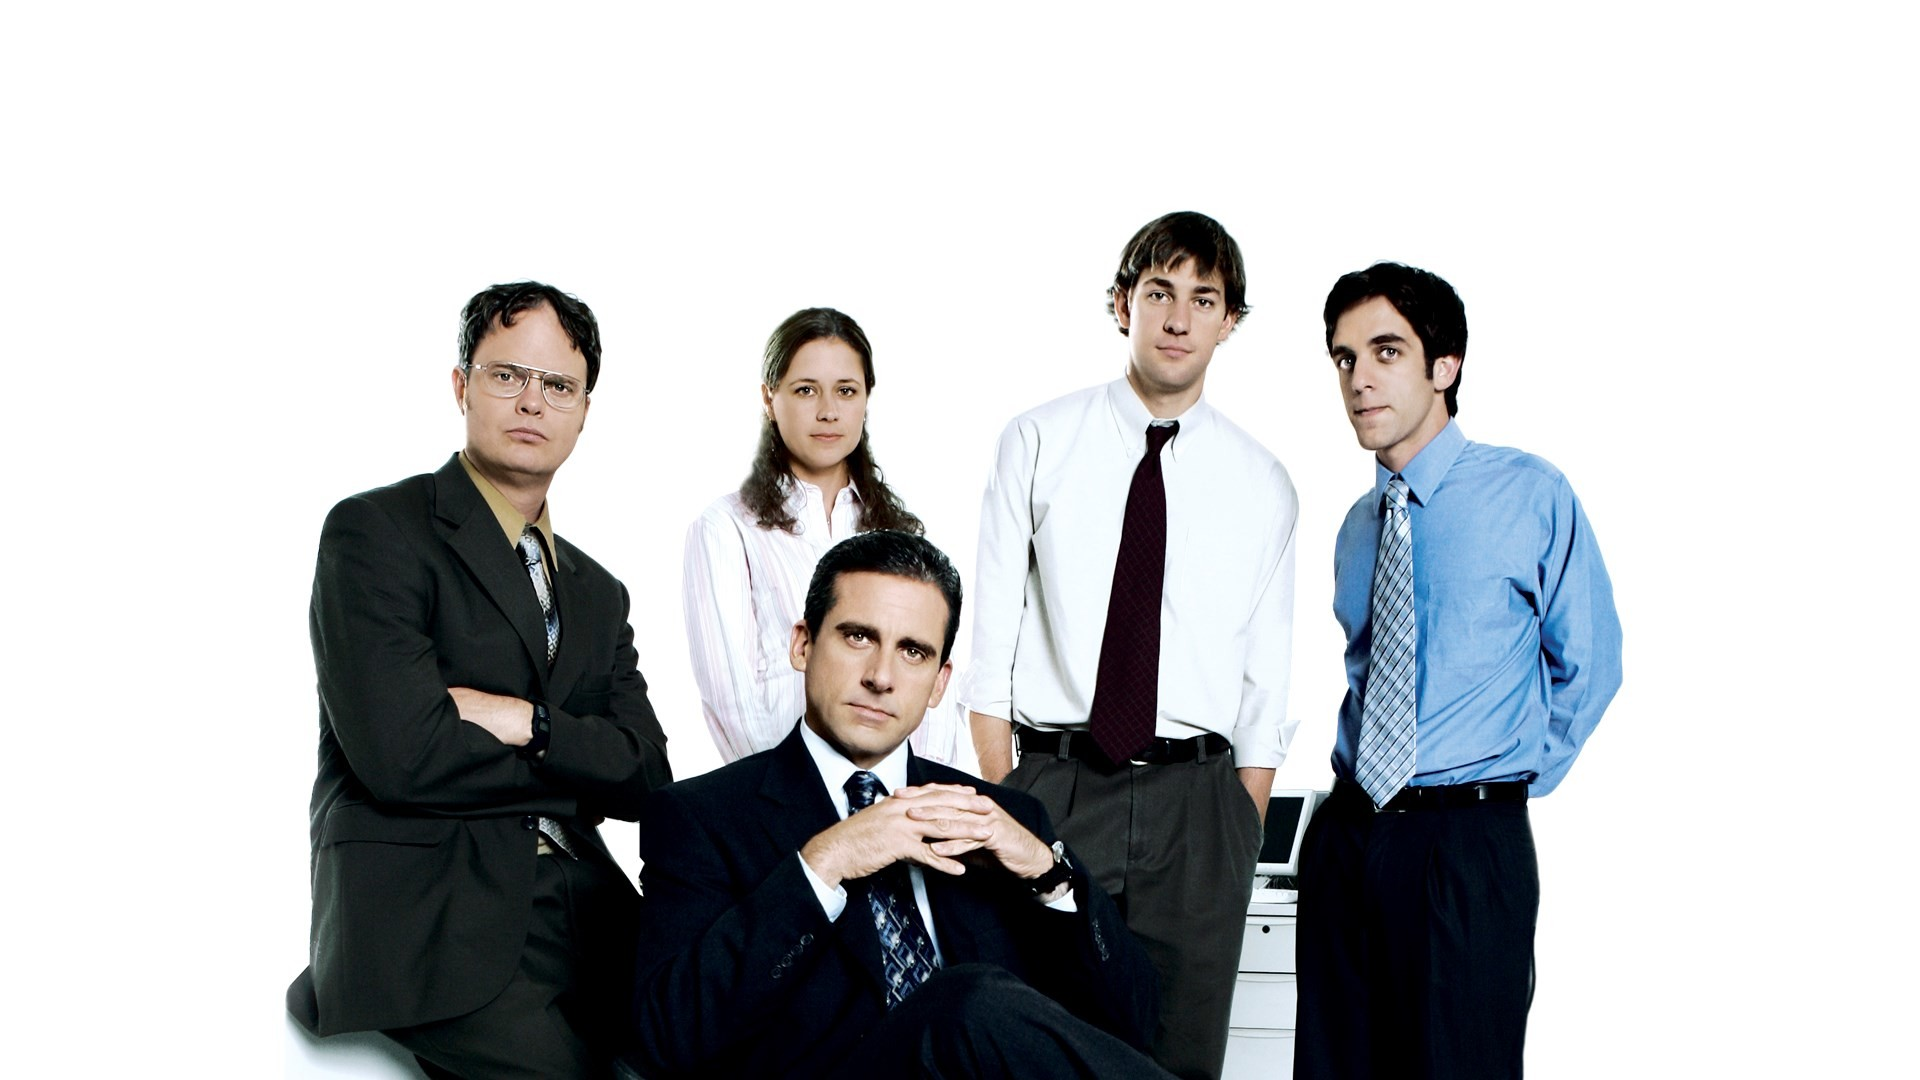 2017-03-23 – the office us picture free for desktop, #1975535